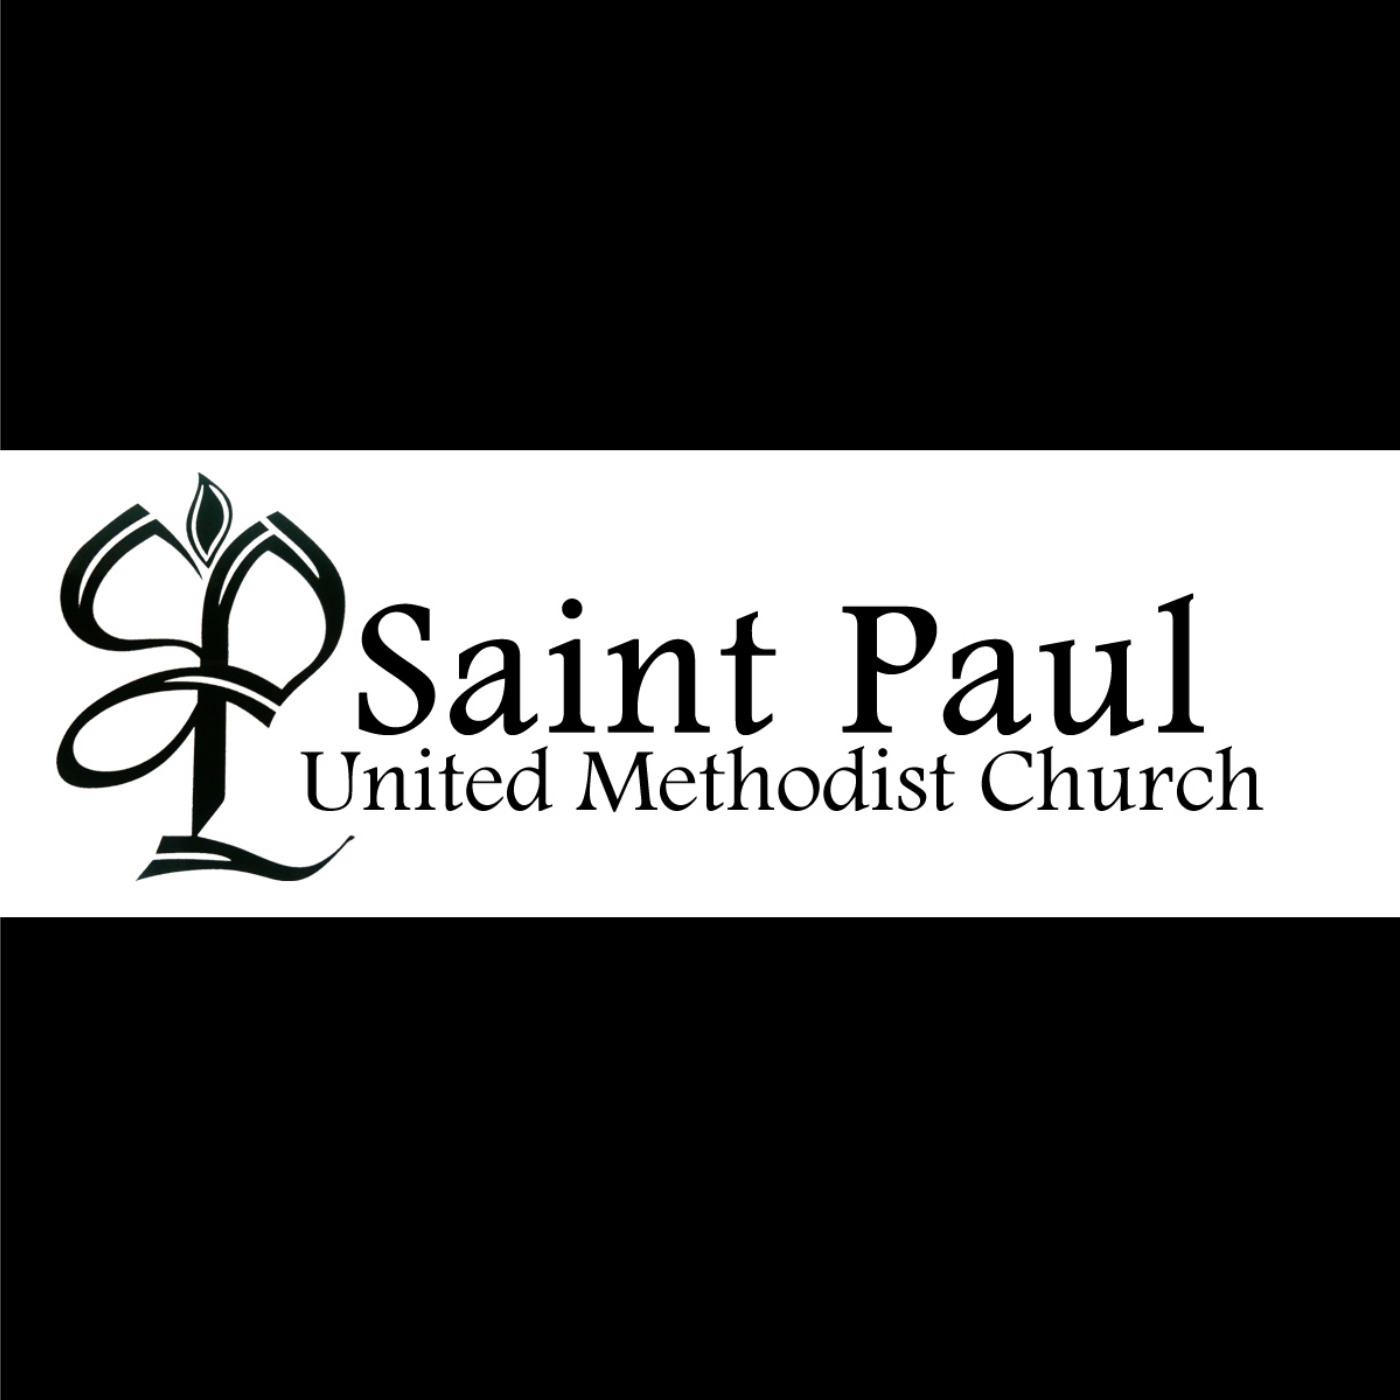 [REVELATION STUDY] St Paul United Methodist Church in Columbus GA